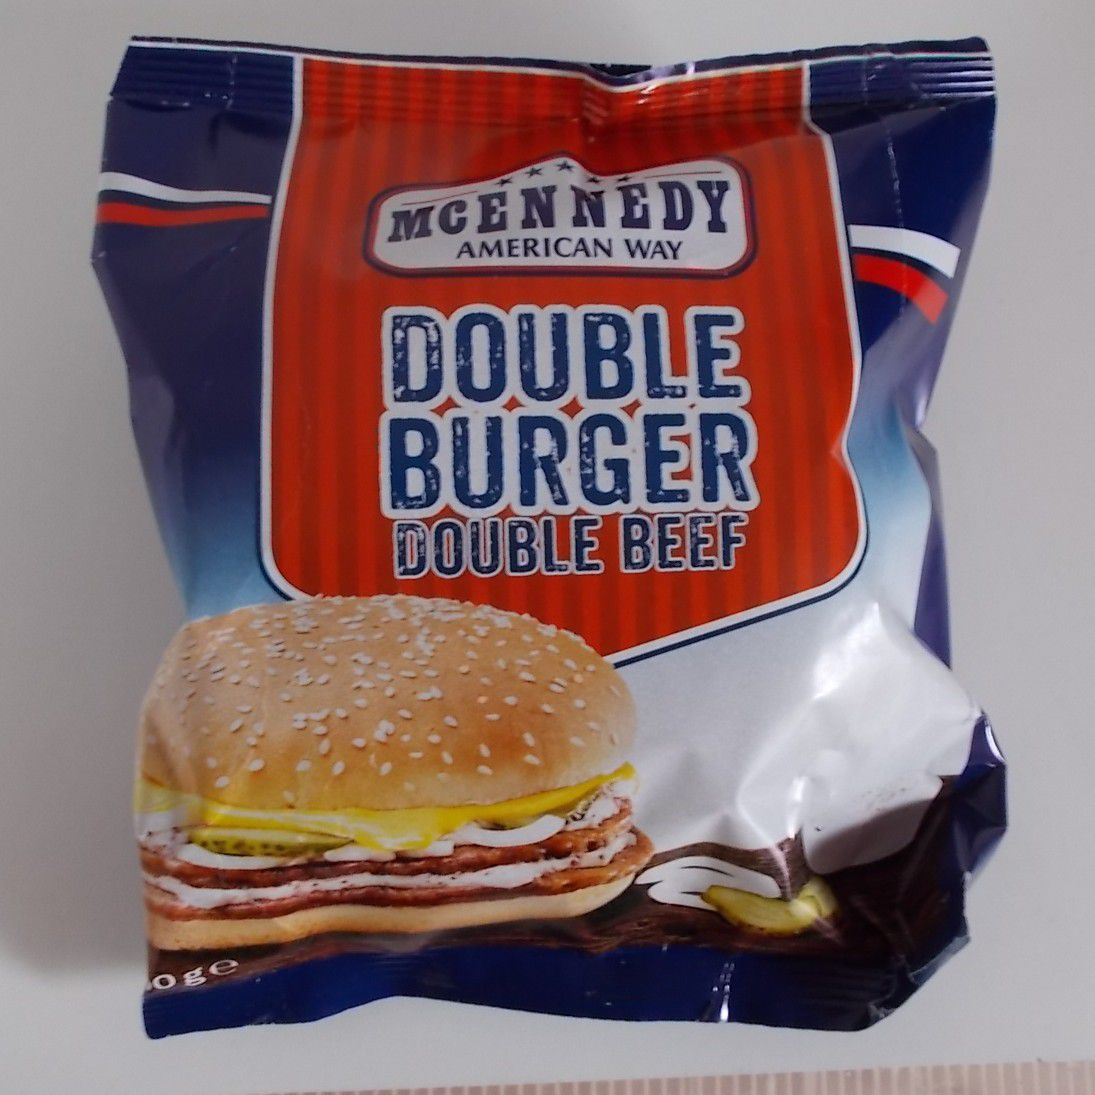 [Lidl] McEnnedy Double Burger Double Beef